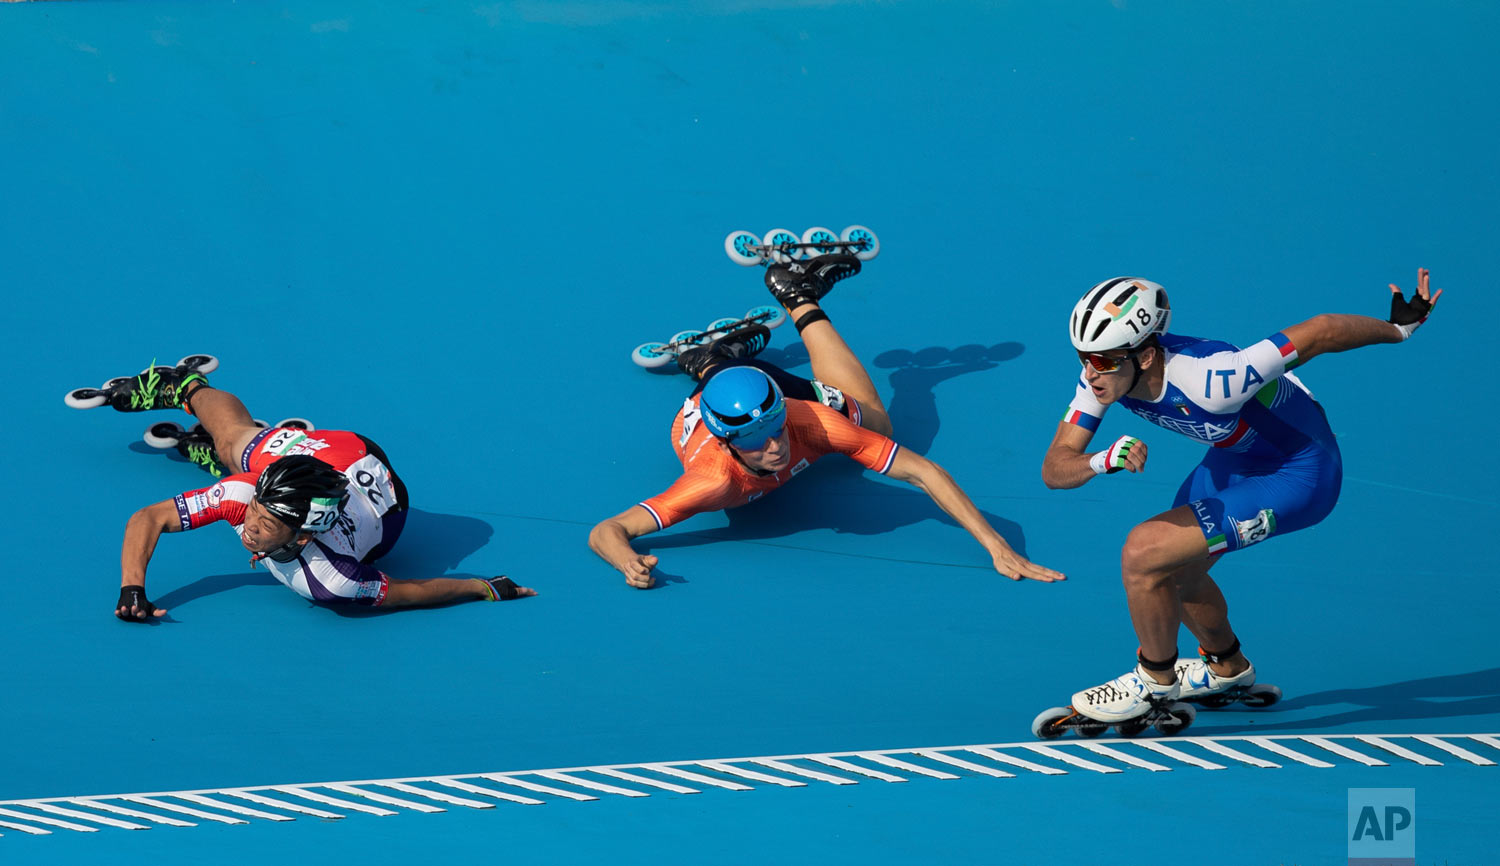 In this photo provided by the OIS/IOC, Italy's Vincenzo Maiorca takes the lead as Taiwan's Chiawei Chang, center, and The Netherland's Merijn Scheperkamp fall during the Roller Speed Skating Men's Combined Speed Event during the Youth Olympic Games in Buenos Aires, Argentina, Monday, Oct. 8, 2018. (Simon Bruty/OIS/IOC via AP)